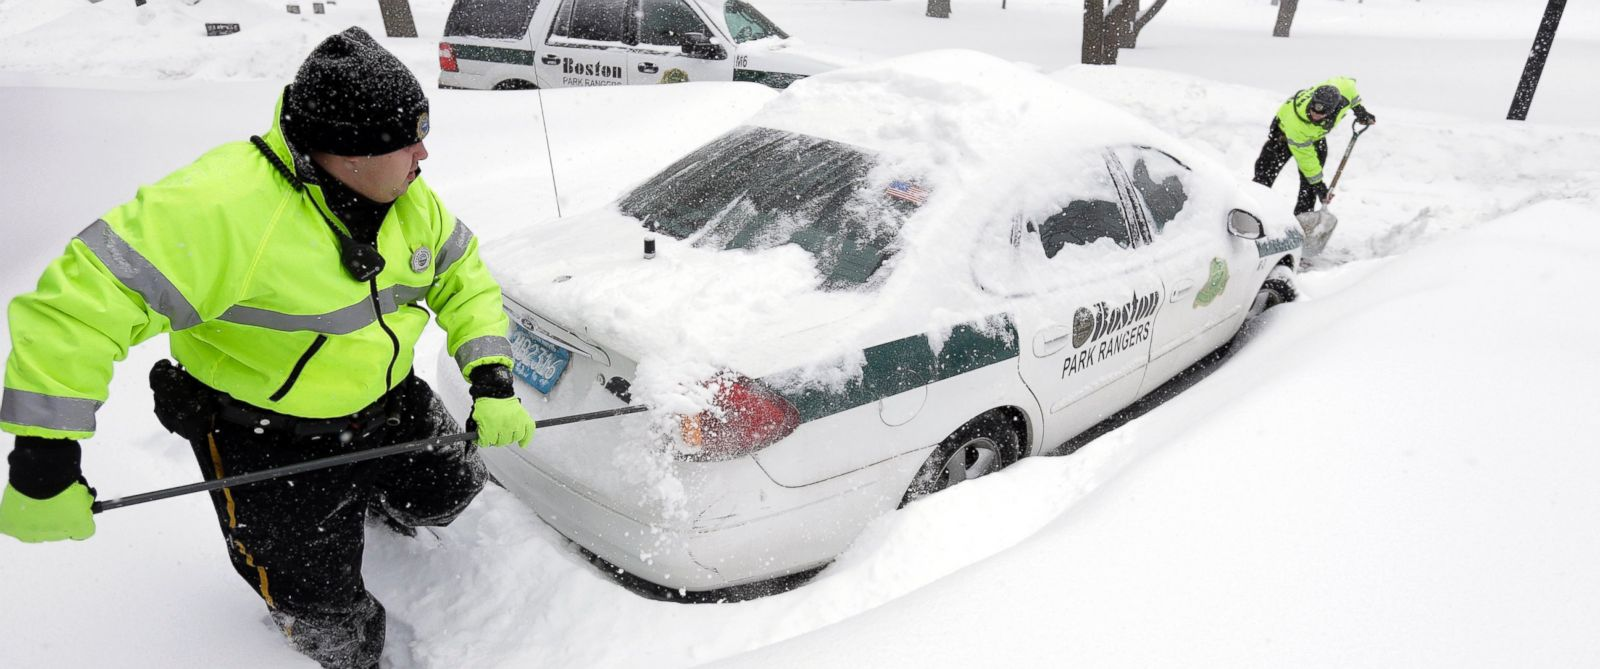 PHOTO: Boston park rangers clear snow from around their car on Feb. 9, 2015, on Boston Common.